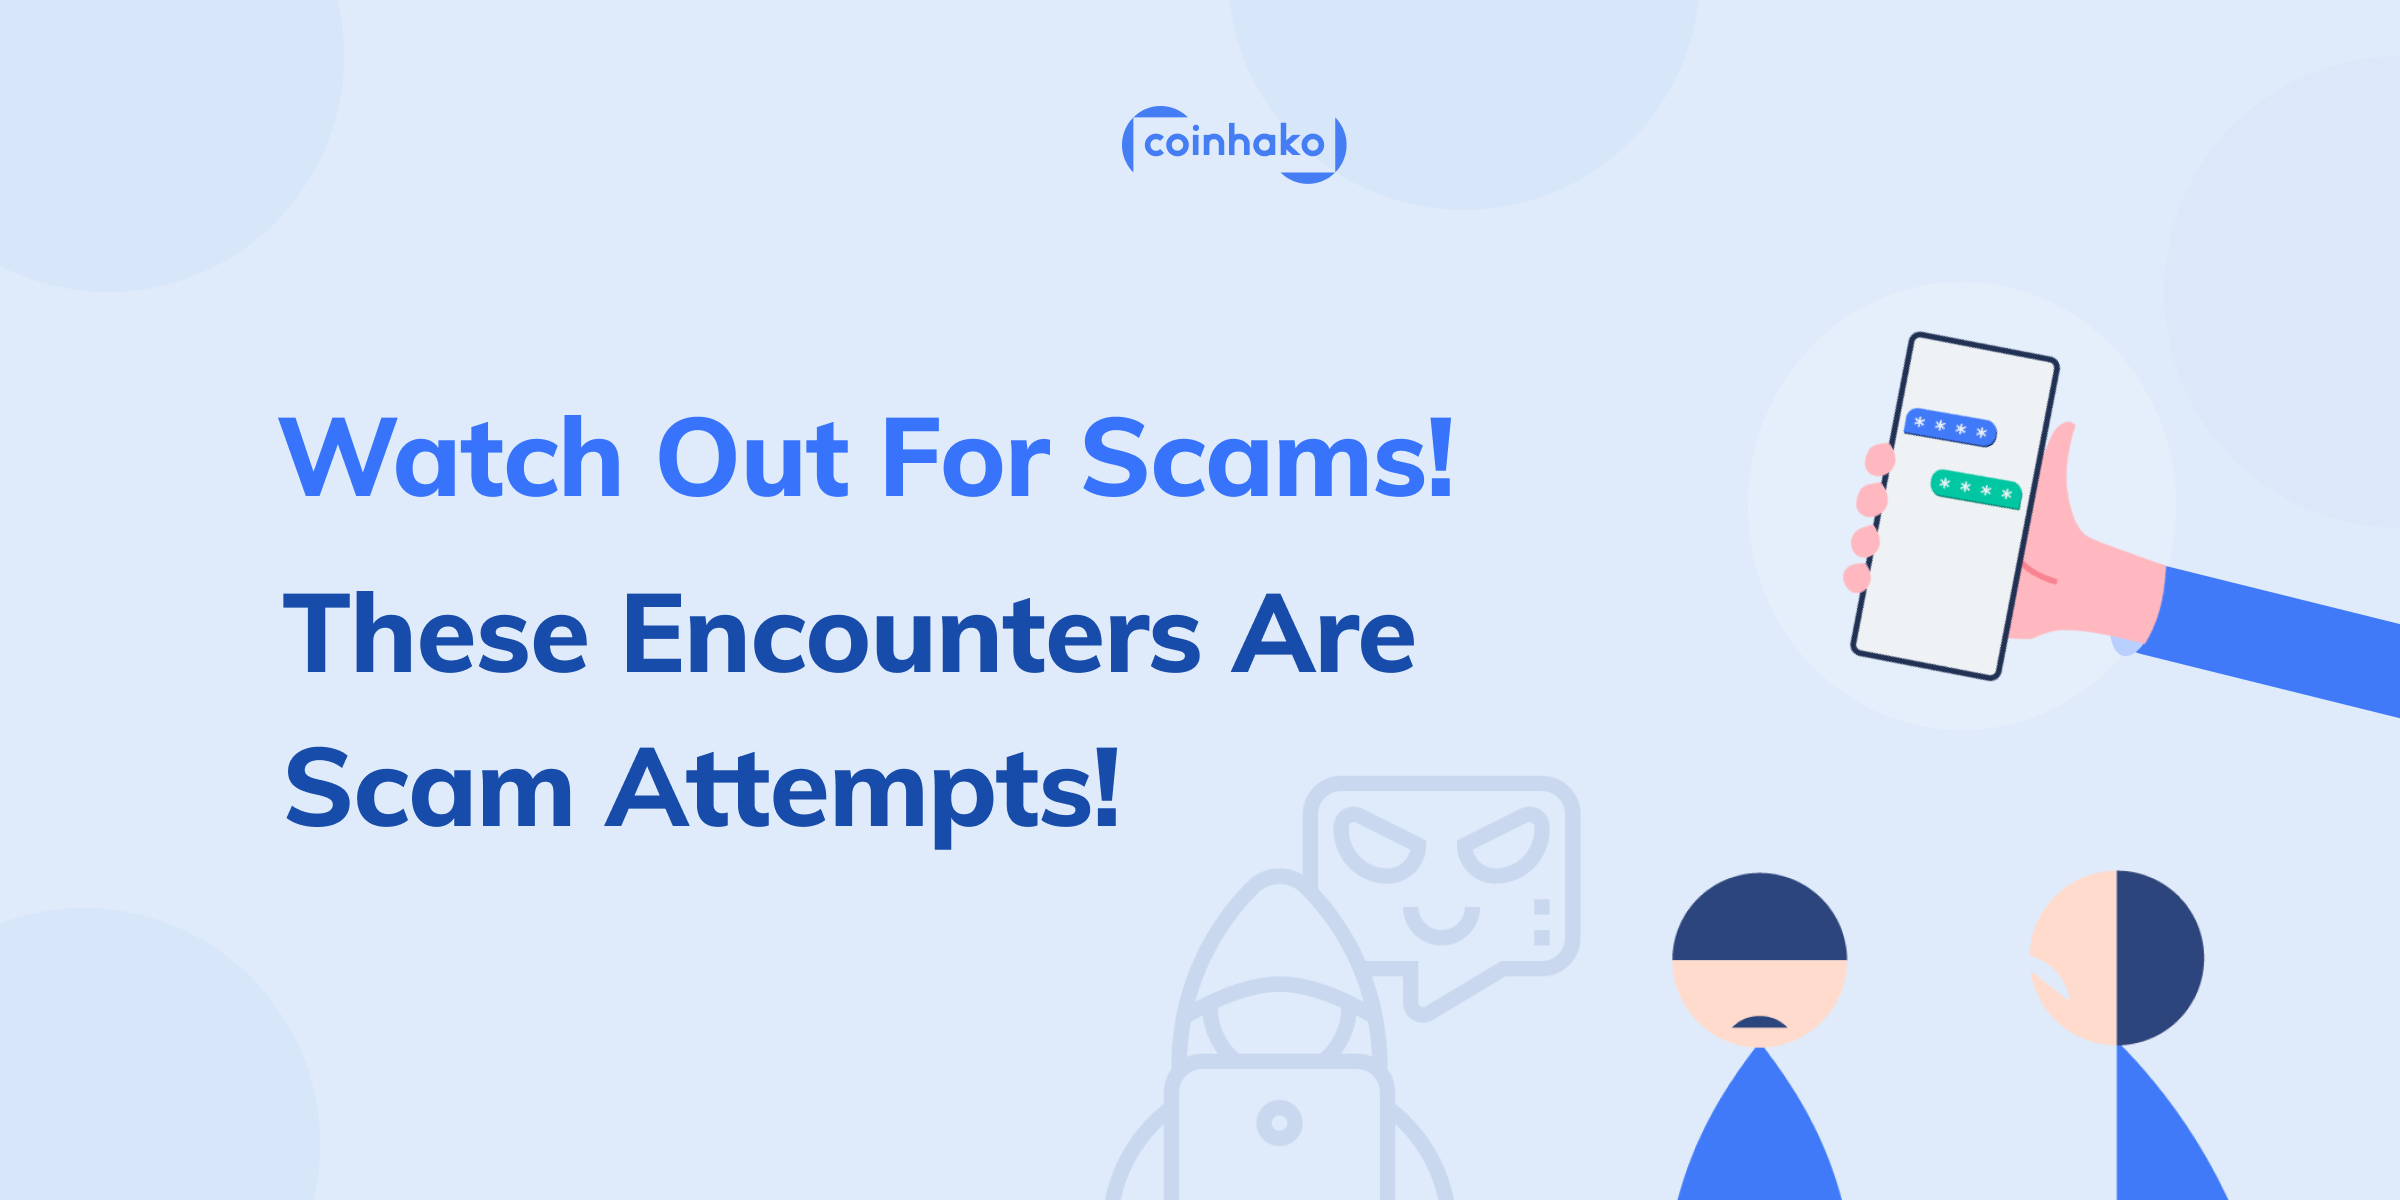 Watch Out! These Encounters Are Scam Attempts!